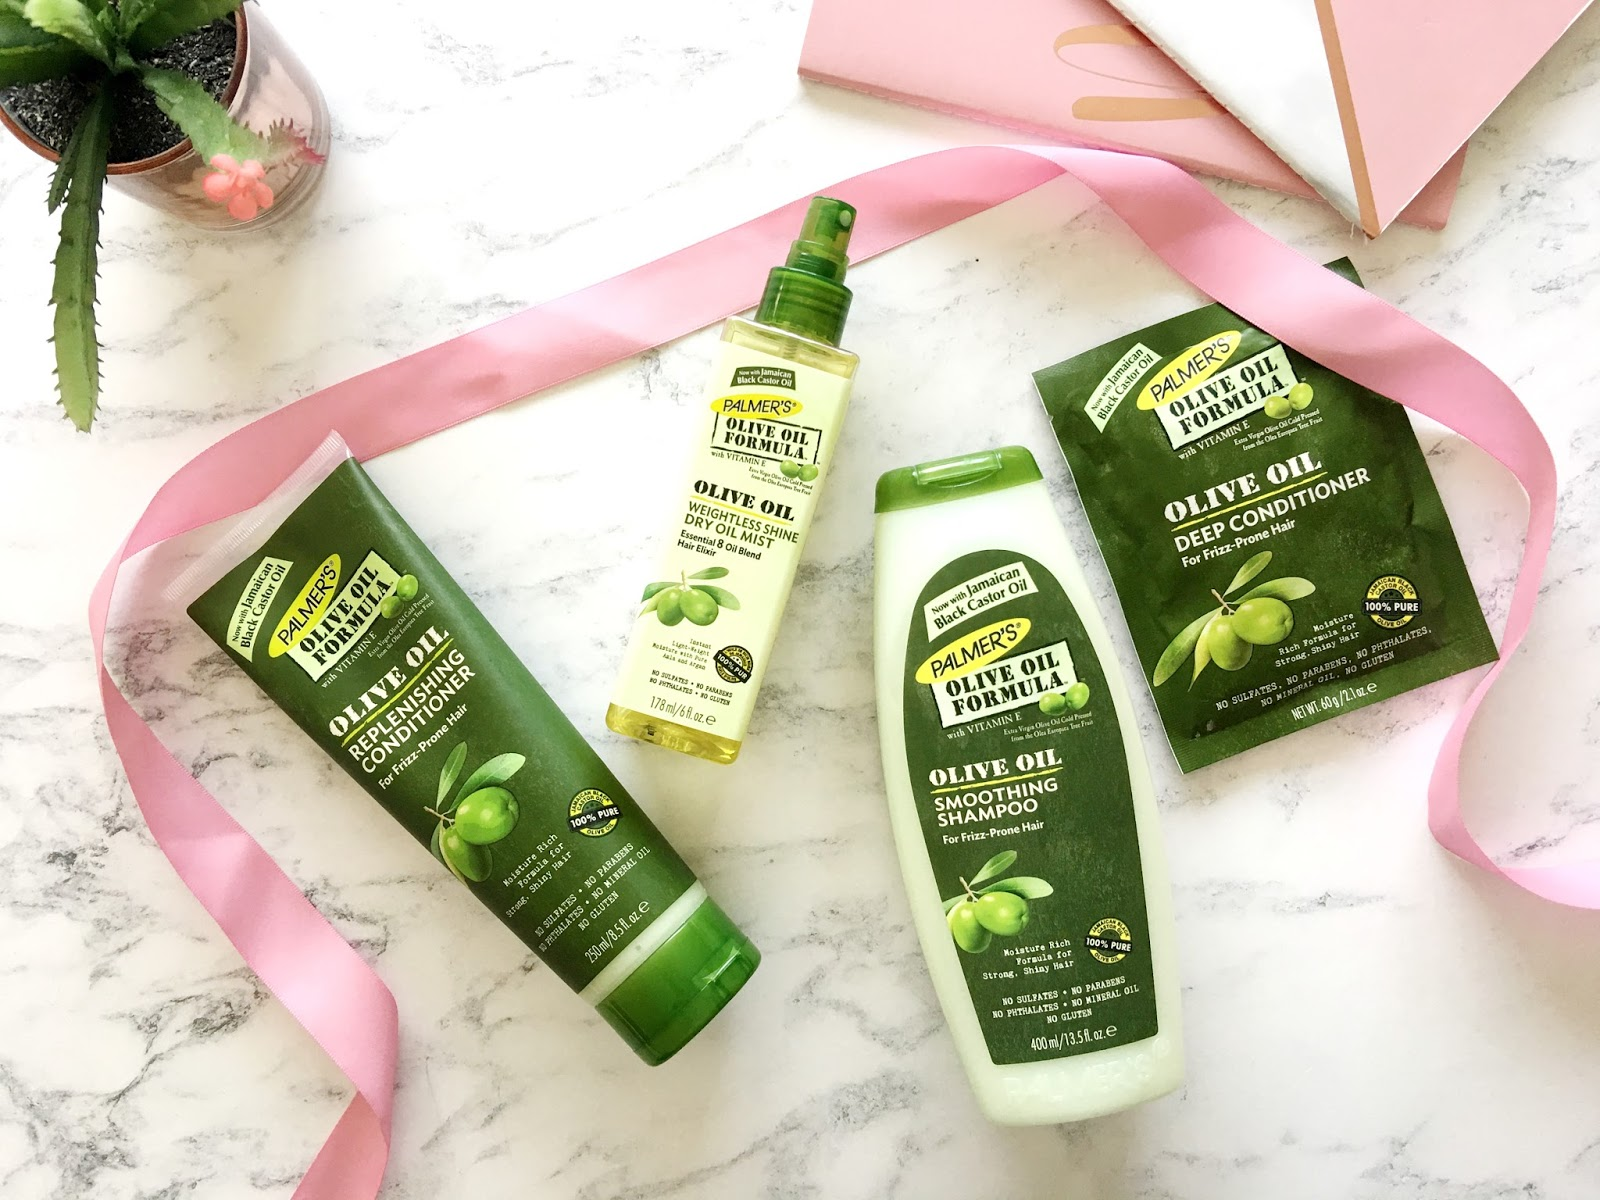 Palmers Olive Oil Hair Range Review